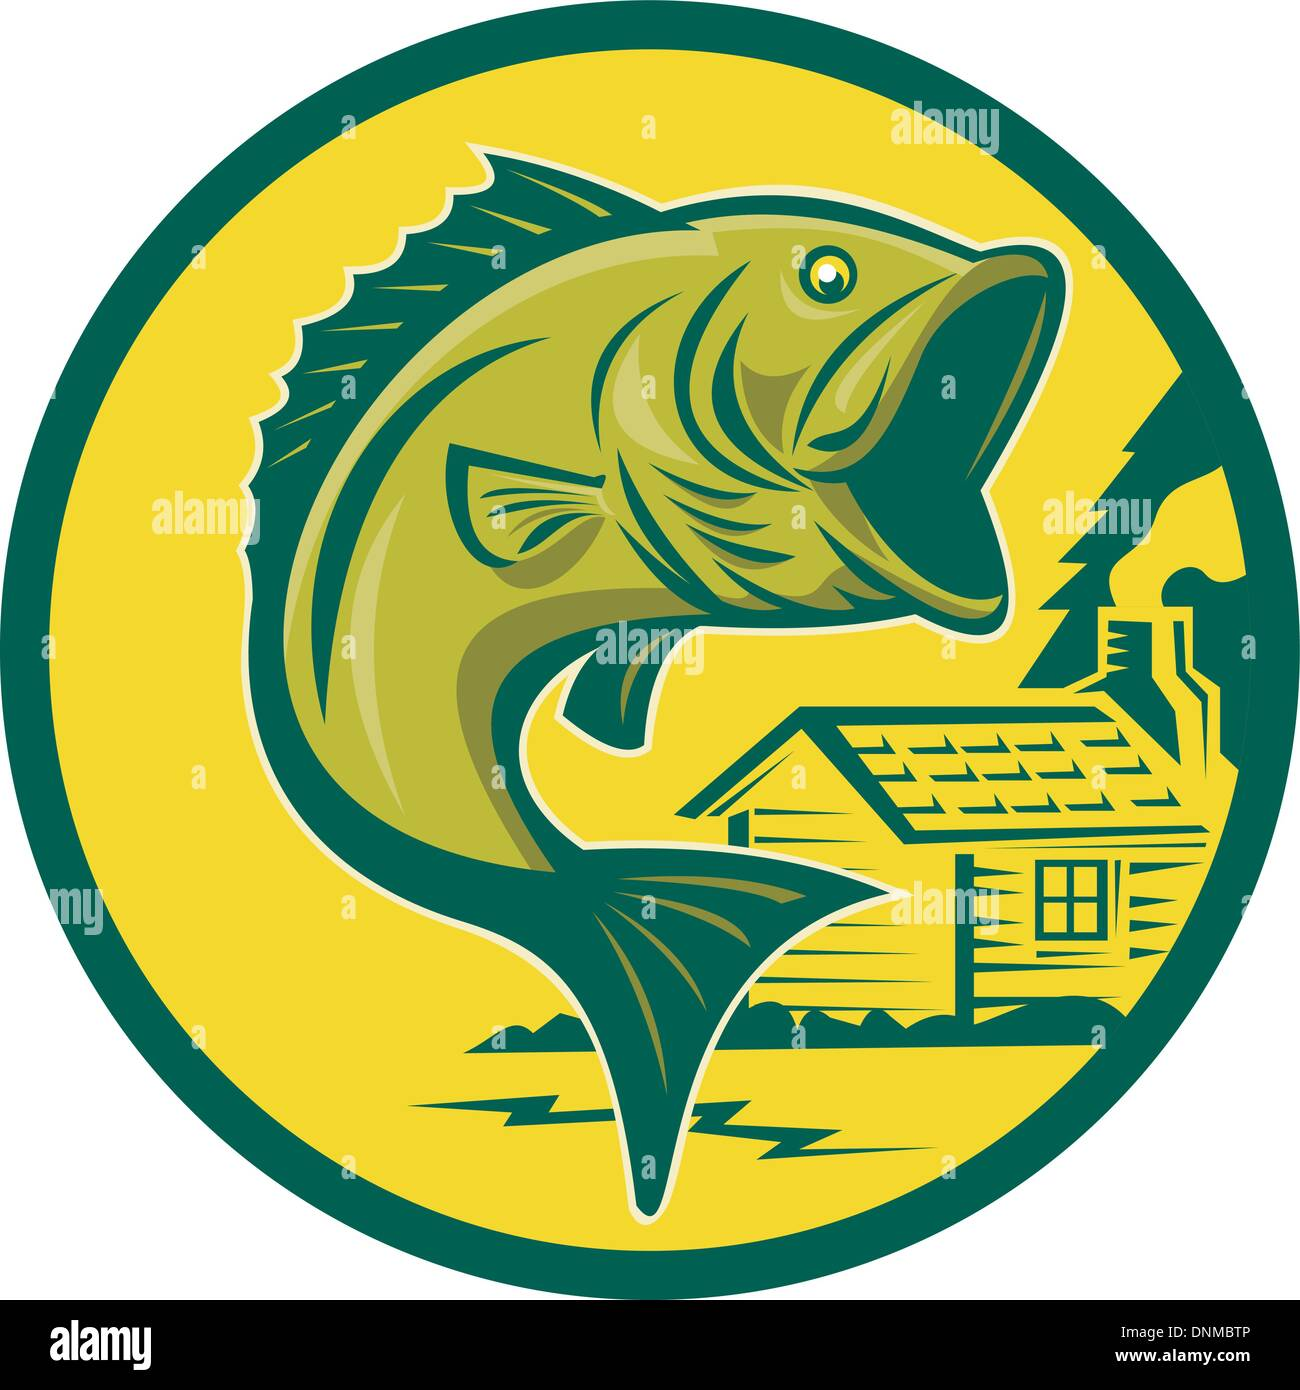 illustration of a largemouth bass fish jumping set inside circle with log cabin in background background done in retro style - Stock Vector